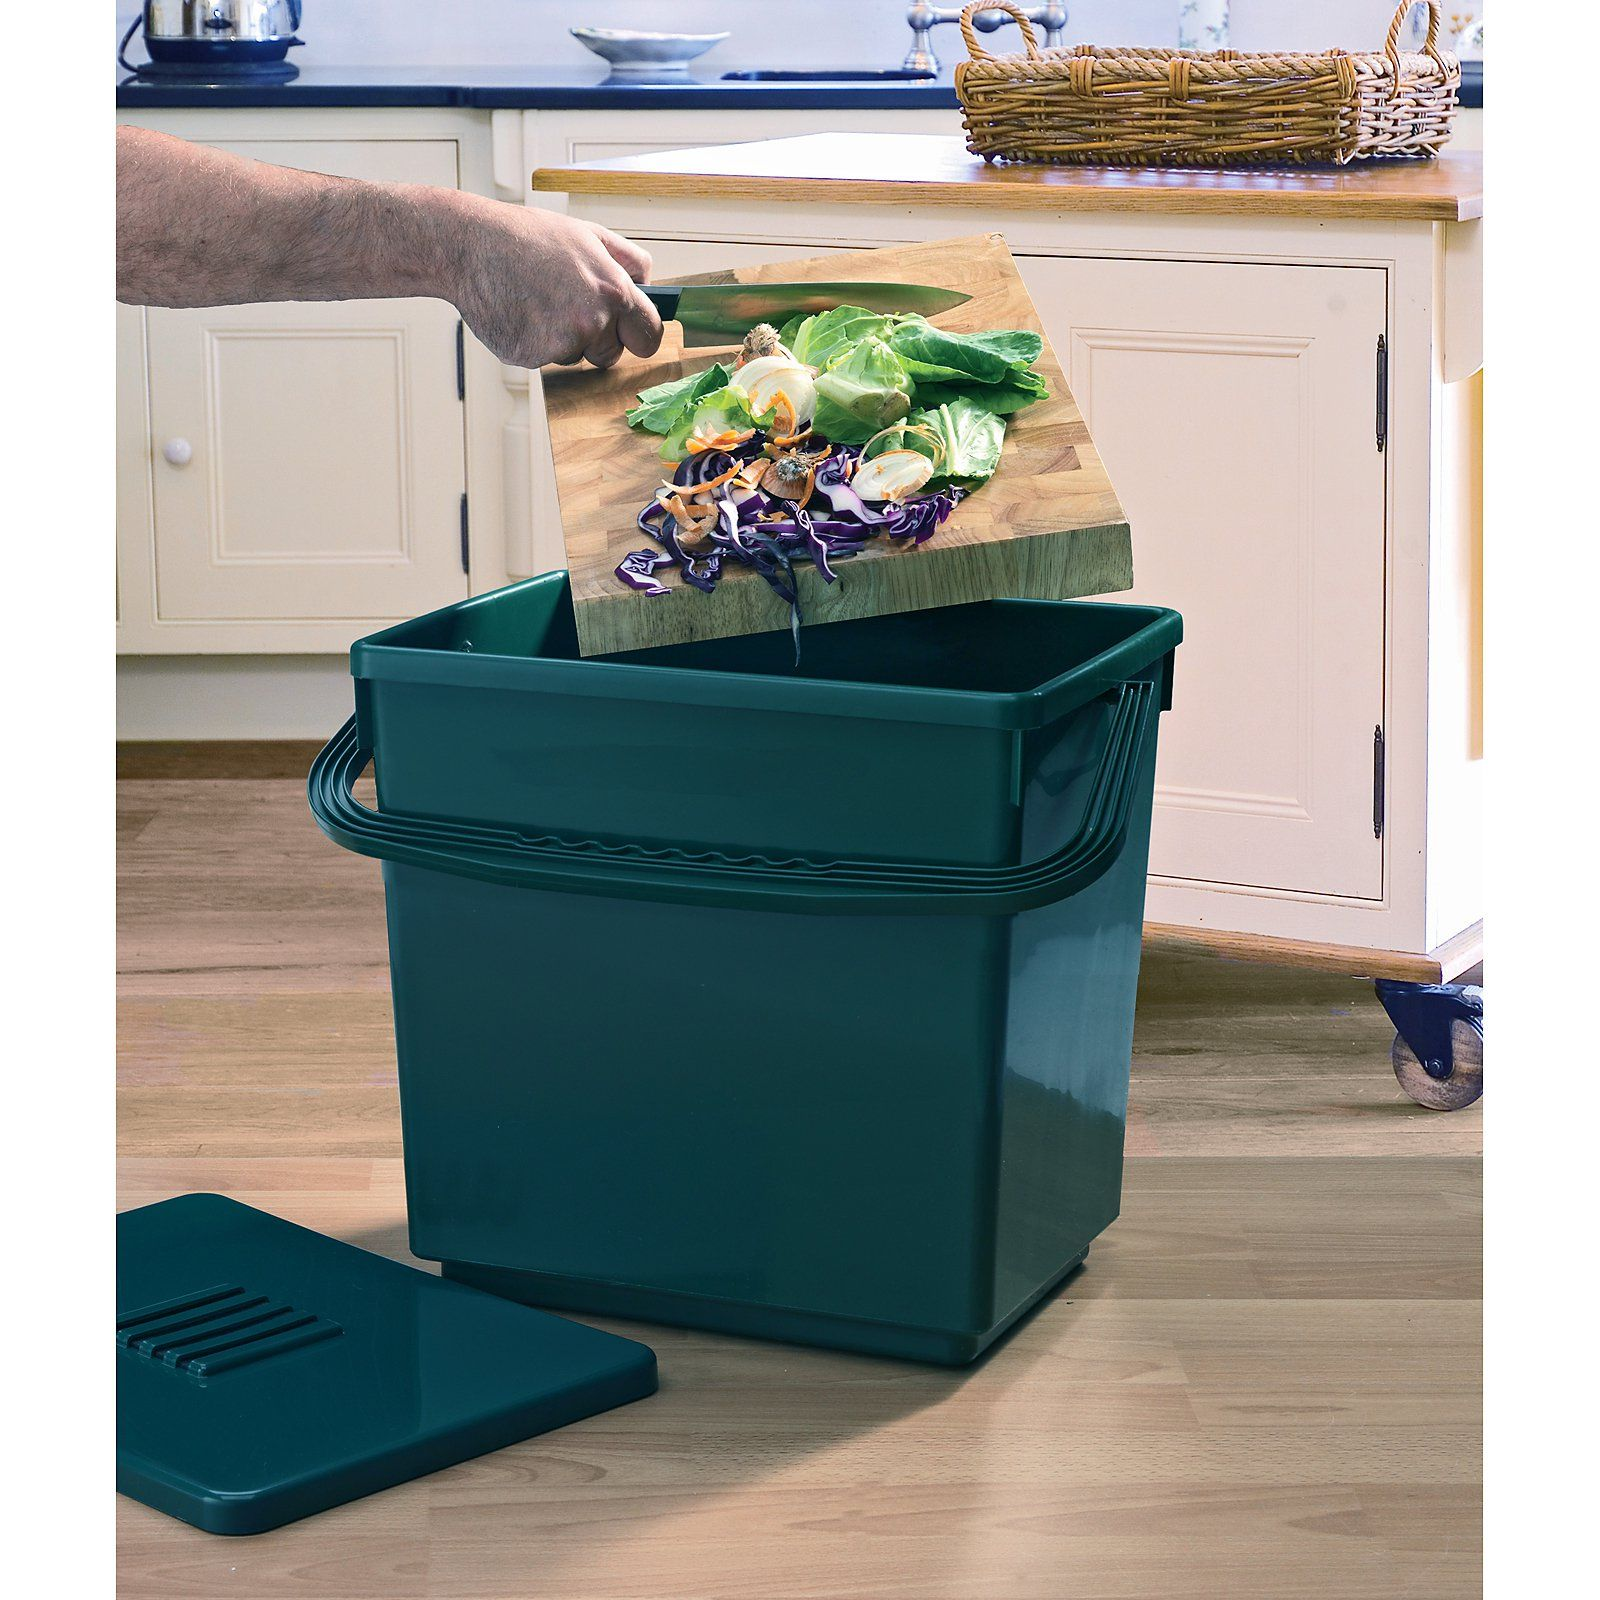 garland jumbo 8 gallon odor free recycled plastic composter caddy